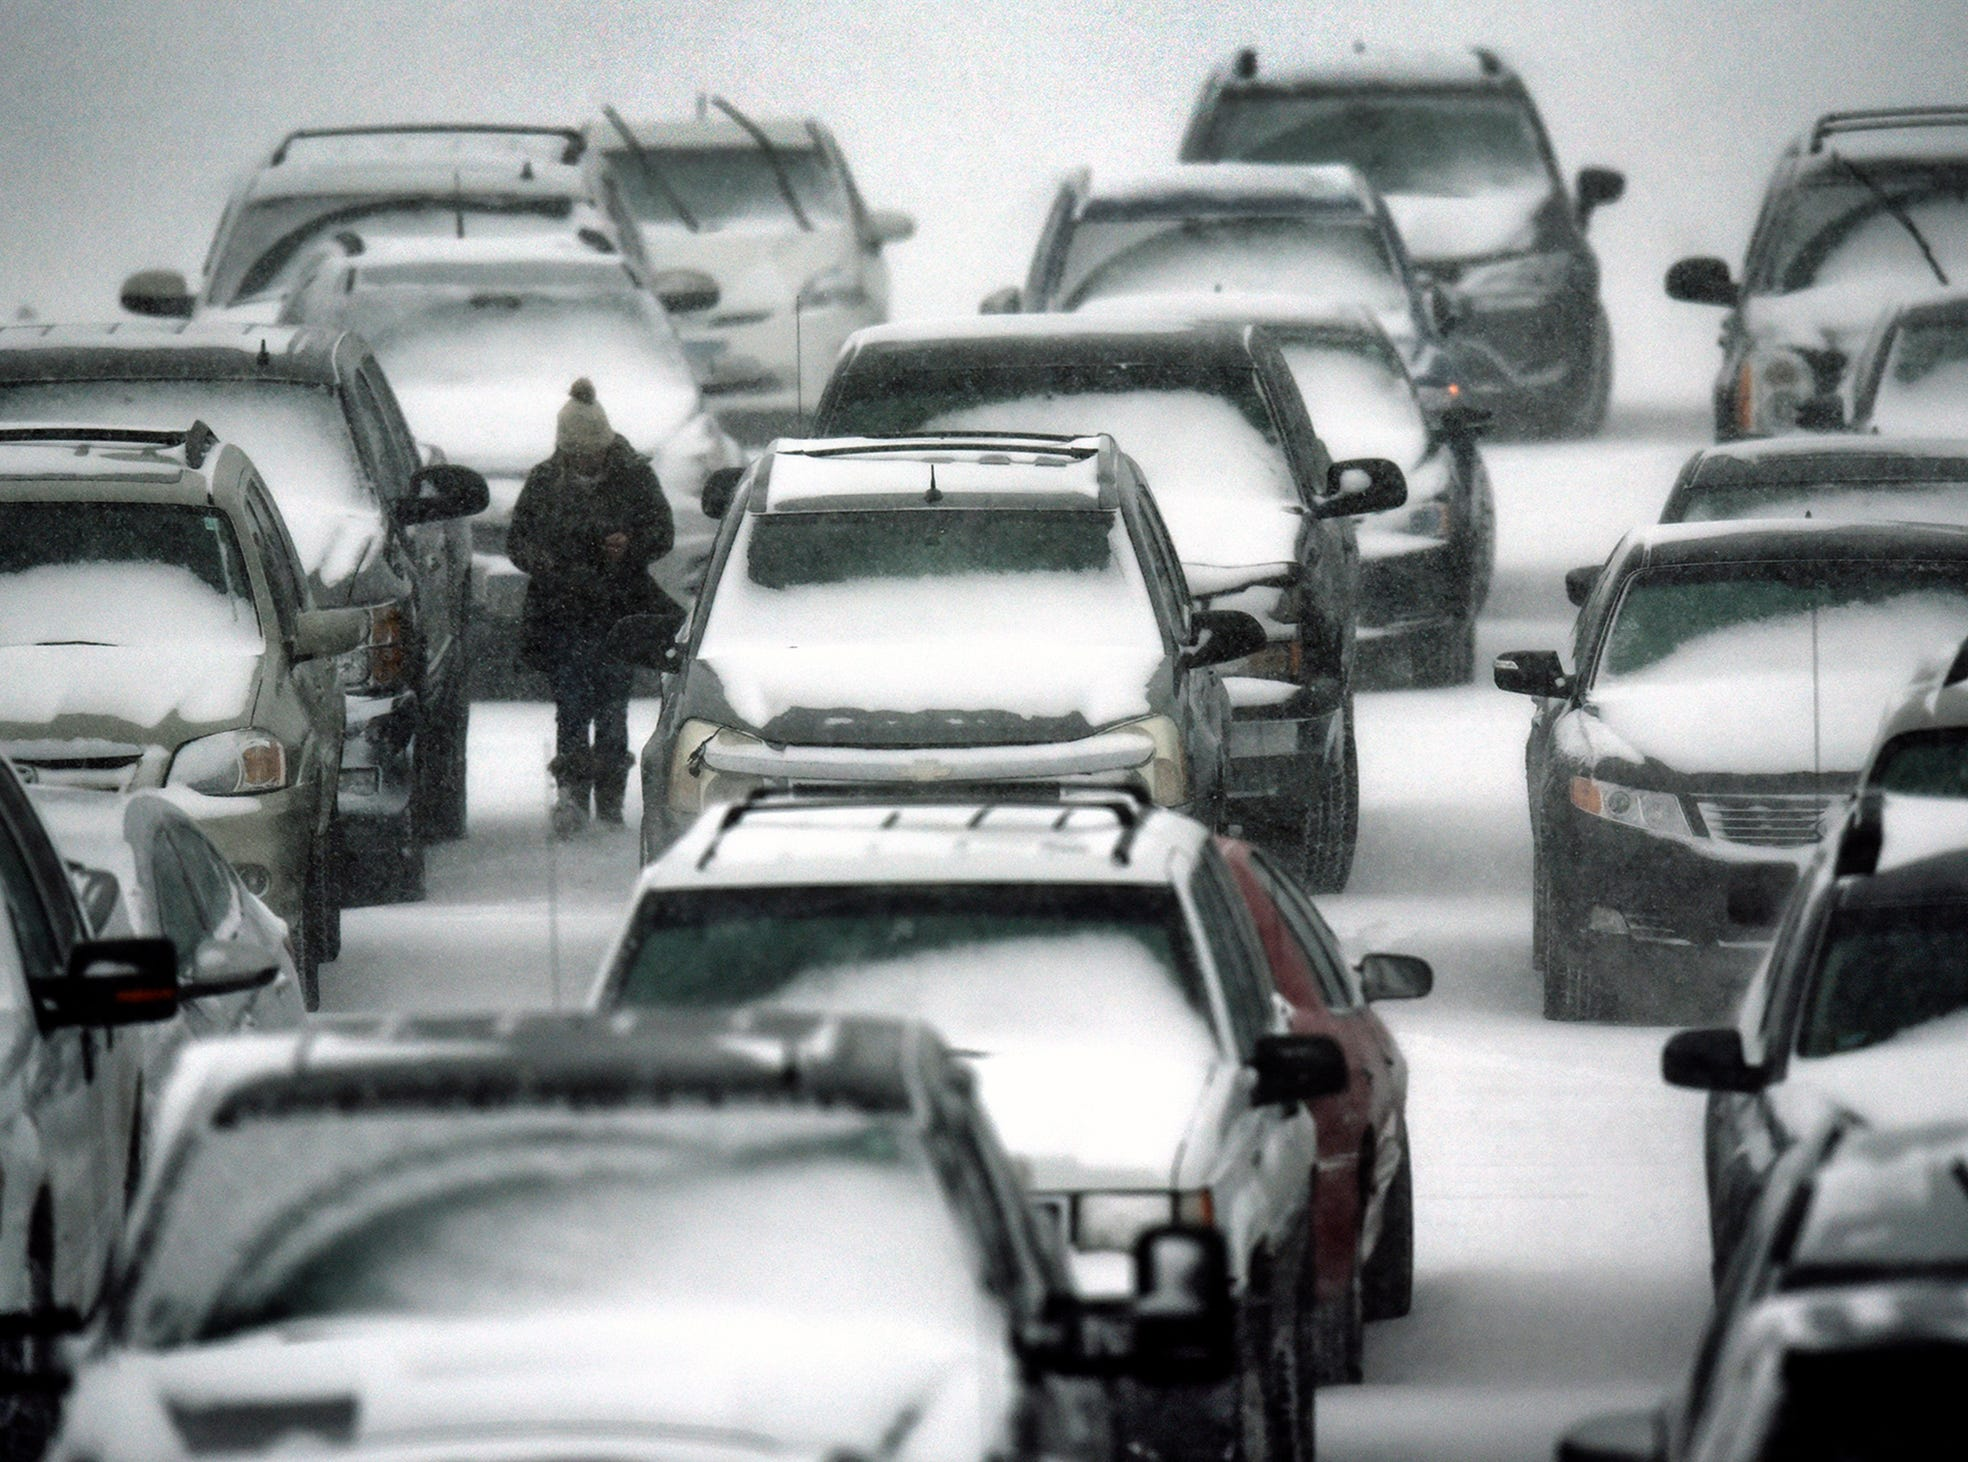 Heavy snow falls on cars parked in the lot at the MAC Saturday afternoon, Feb. 24, in St. Cloud.